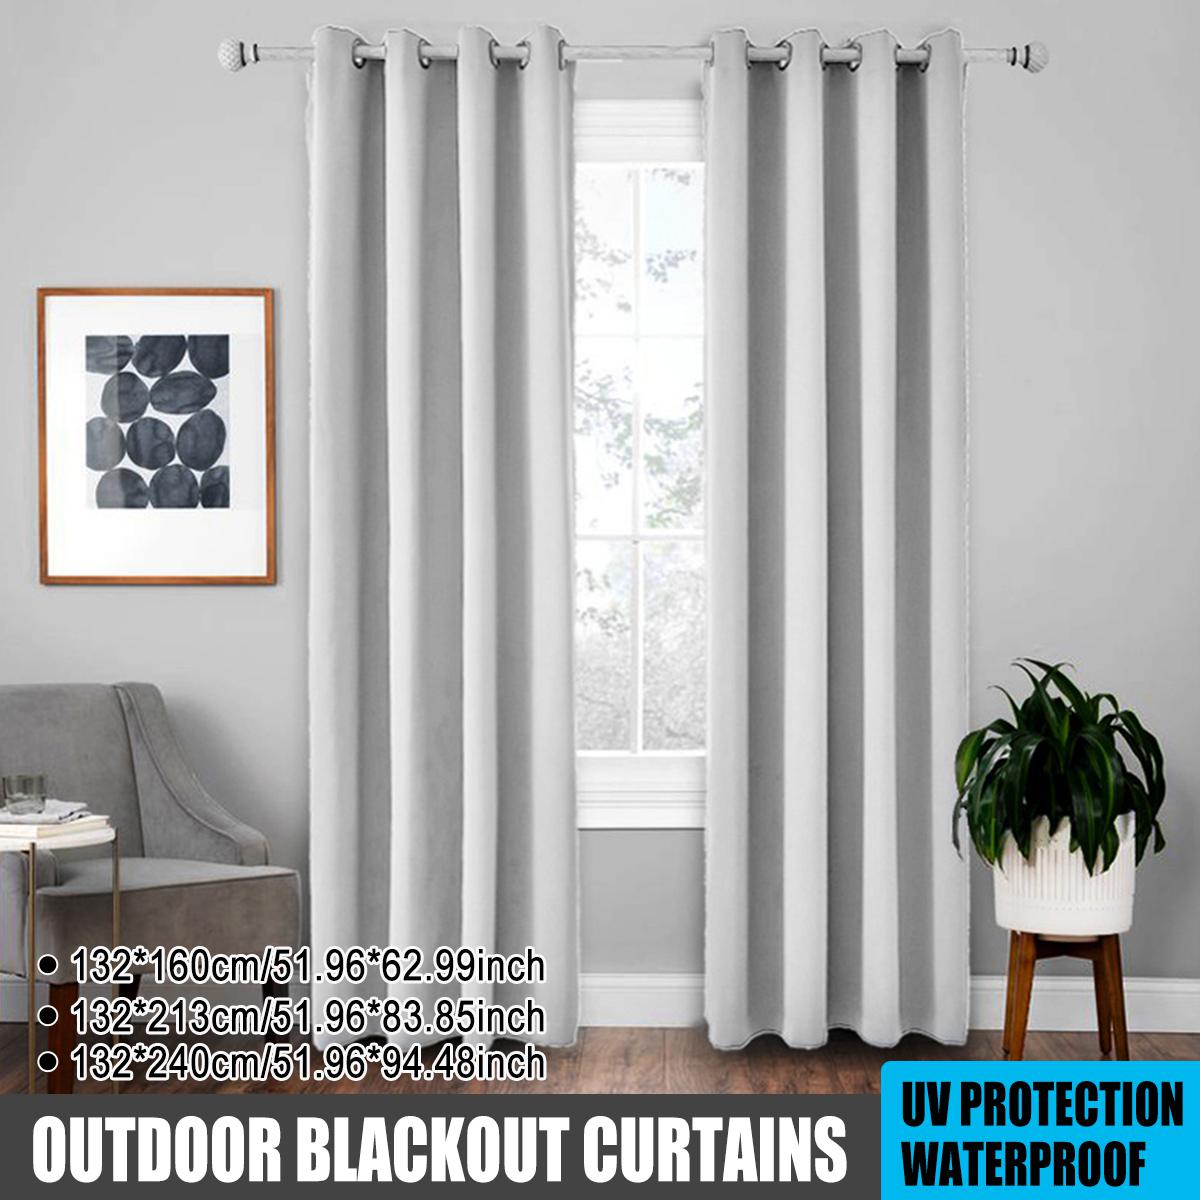 outdoor blackout curtains patio uv protection waterproof curtains shower curtain not including rod lightgrey 132x160 inchs